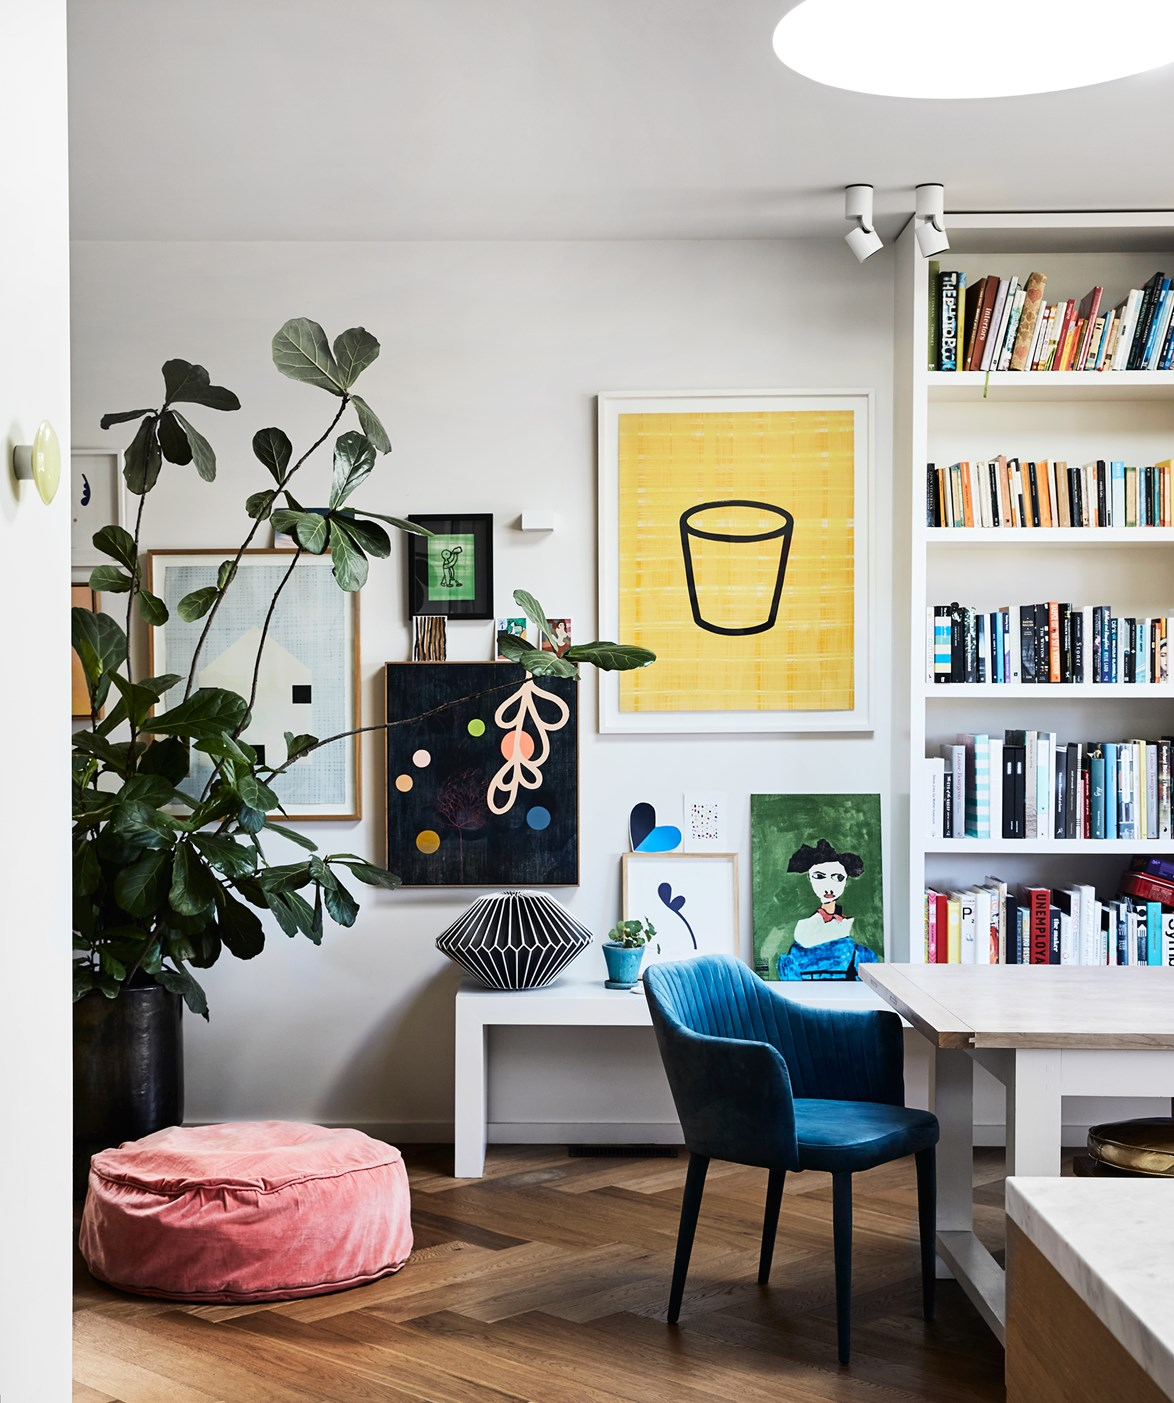 "Artist and designer Rachel Castle turns her eye for bold hues and texture to her [colourful Sydney home](https://www.homestolove.com.au/rachel-castles-colourful-and-quirky-sydney-home-4729|target=""_blank""). Here, a [gallery wall](https://www.homestolove.com.au/how-to-create-an-art-gallery-wall-4860